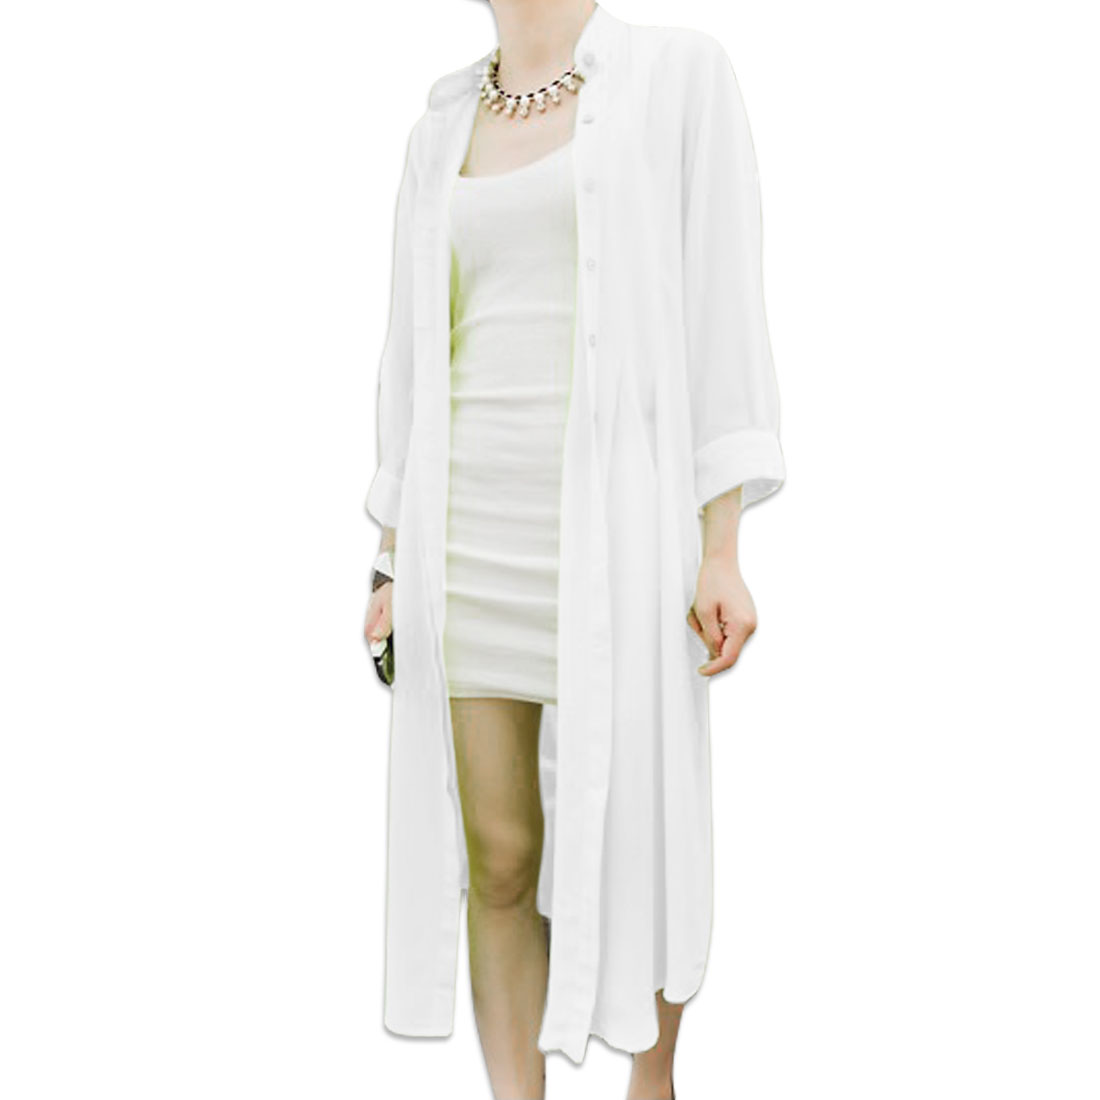 Lady Short Sleeve Chiffon Buttons Front Cropped Trench Cardigan White XS